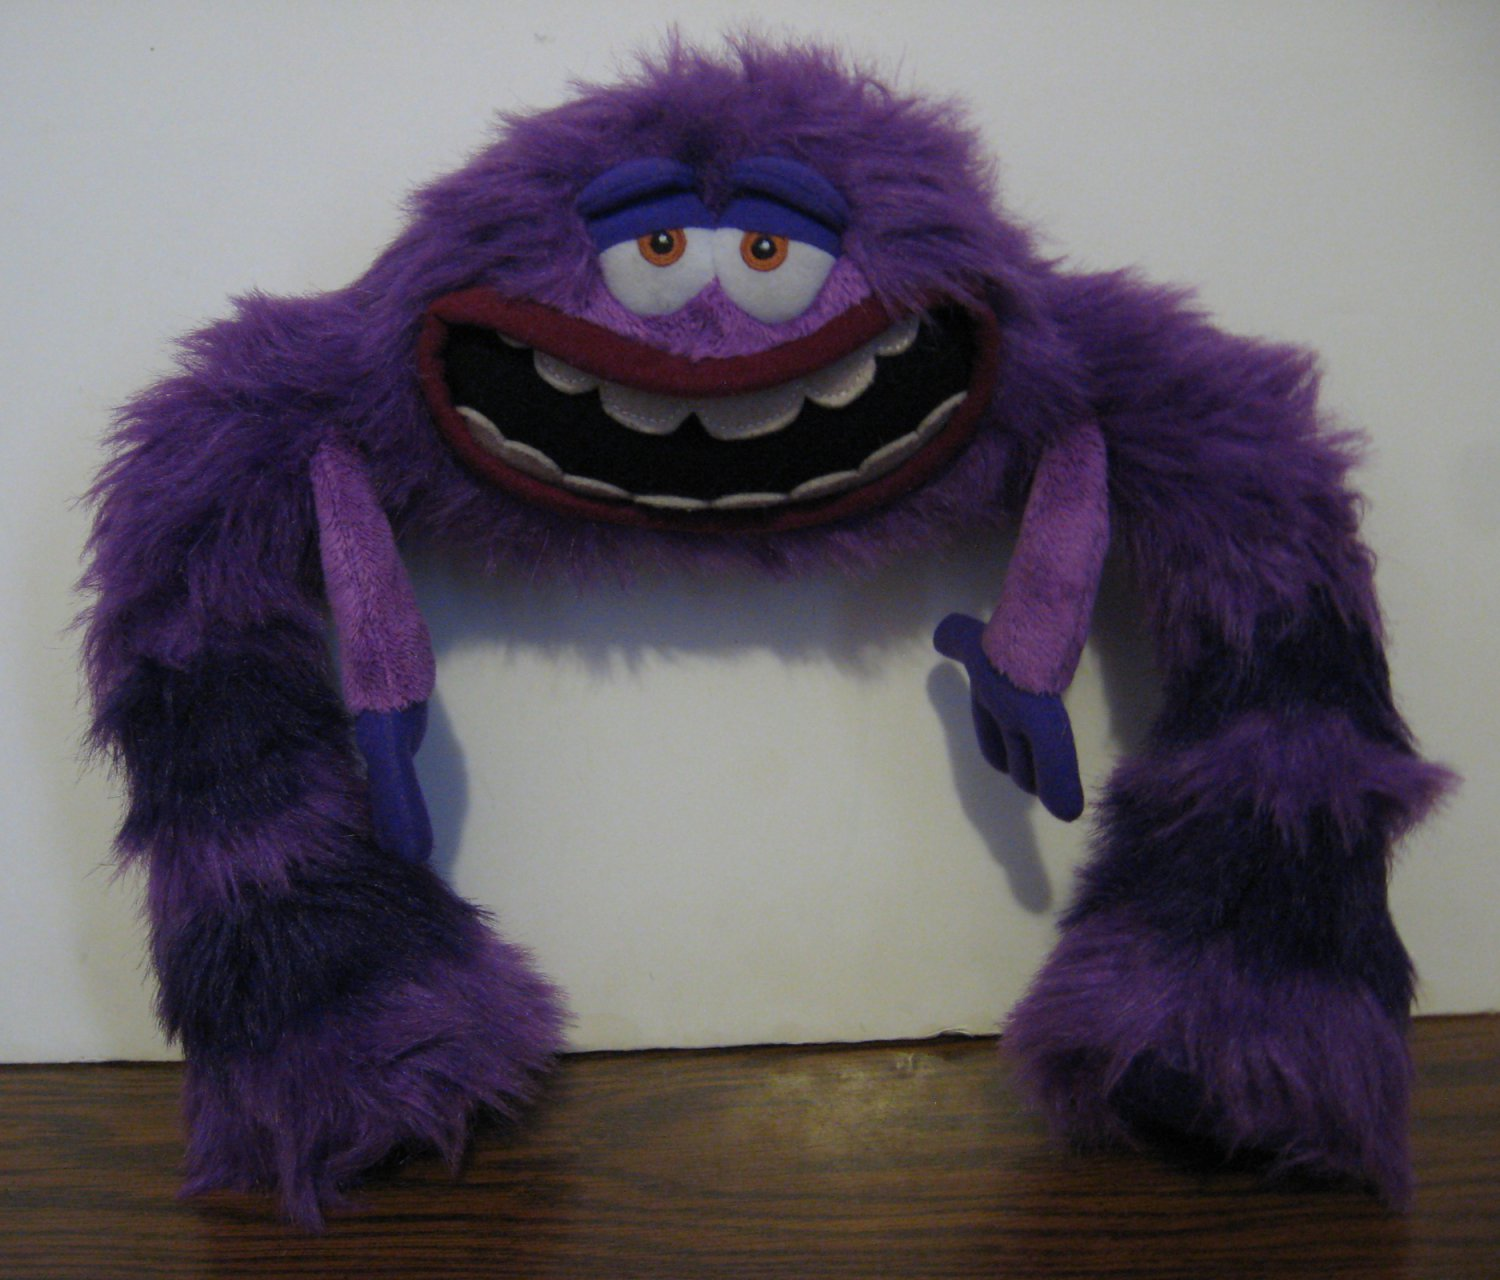 Disney Monsters University Art 12 Plush Purple Monster Pixar